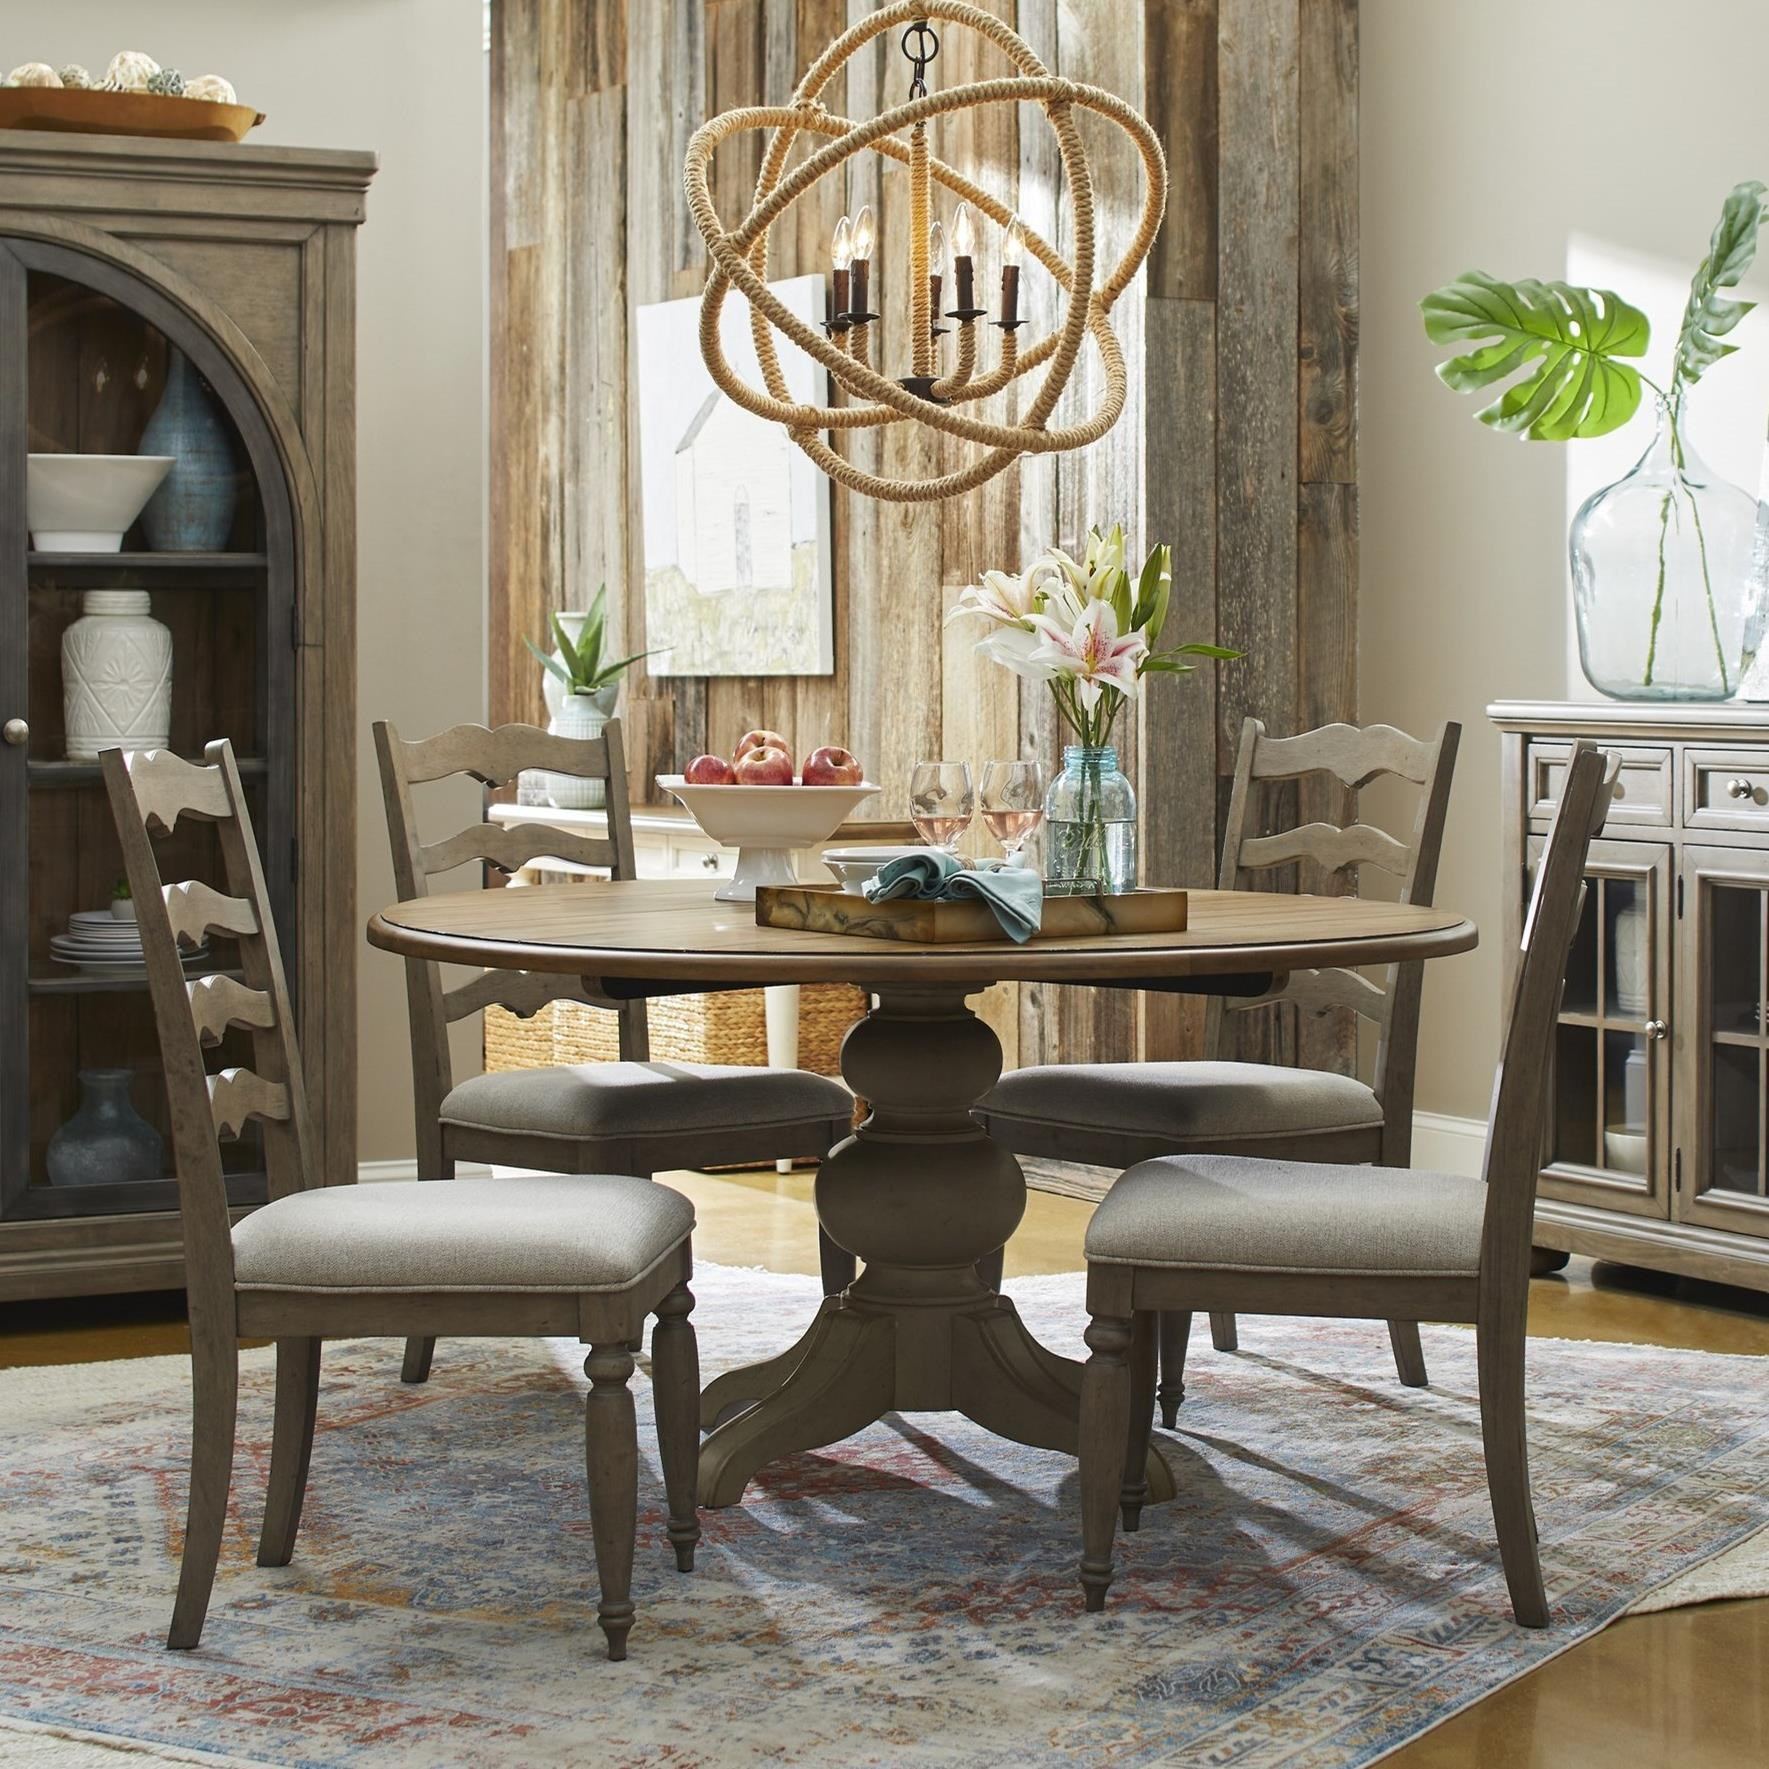 Nashville 5-Piece Dining Set by Trisha Yearwood Home Collection by Klaussner at EFO Furniture Outlet